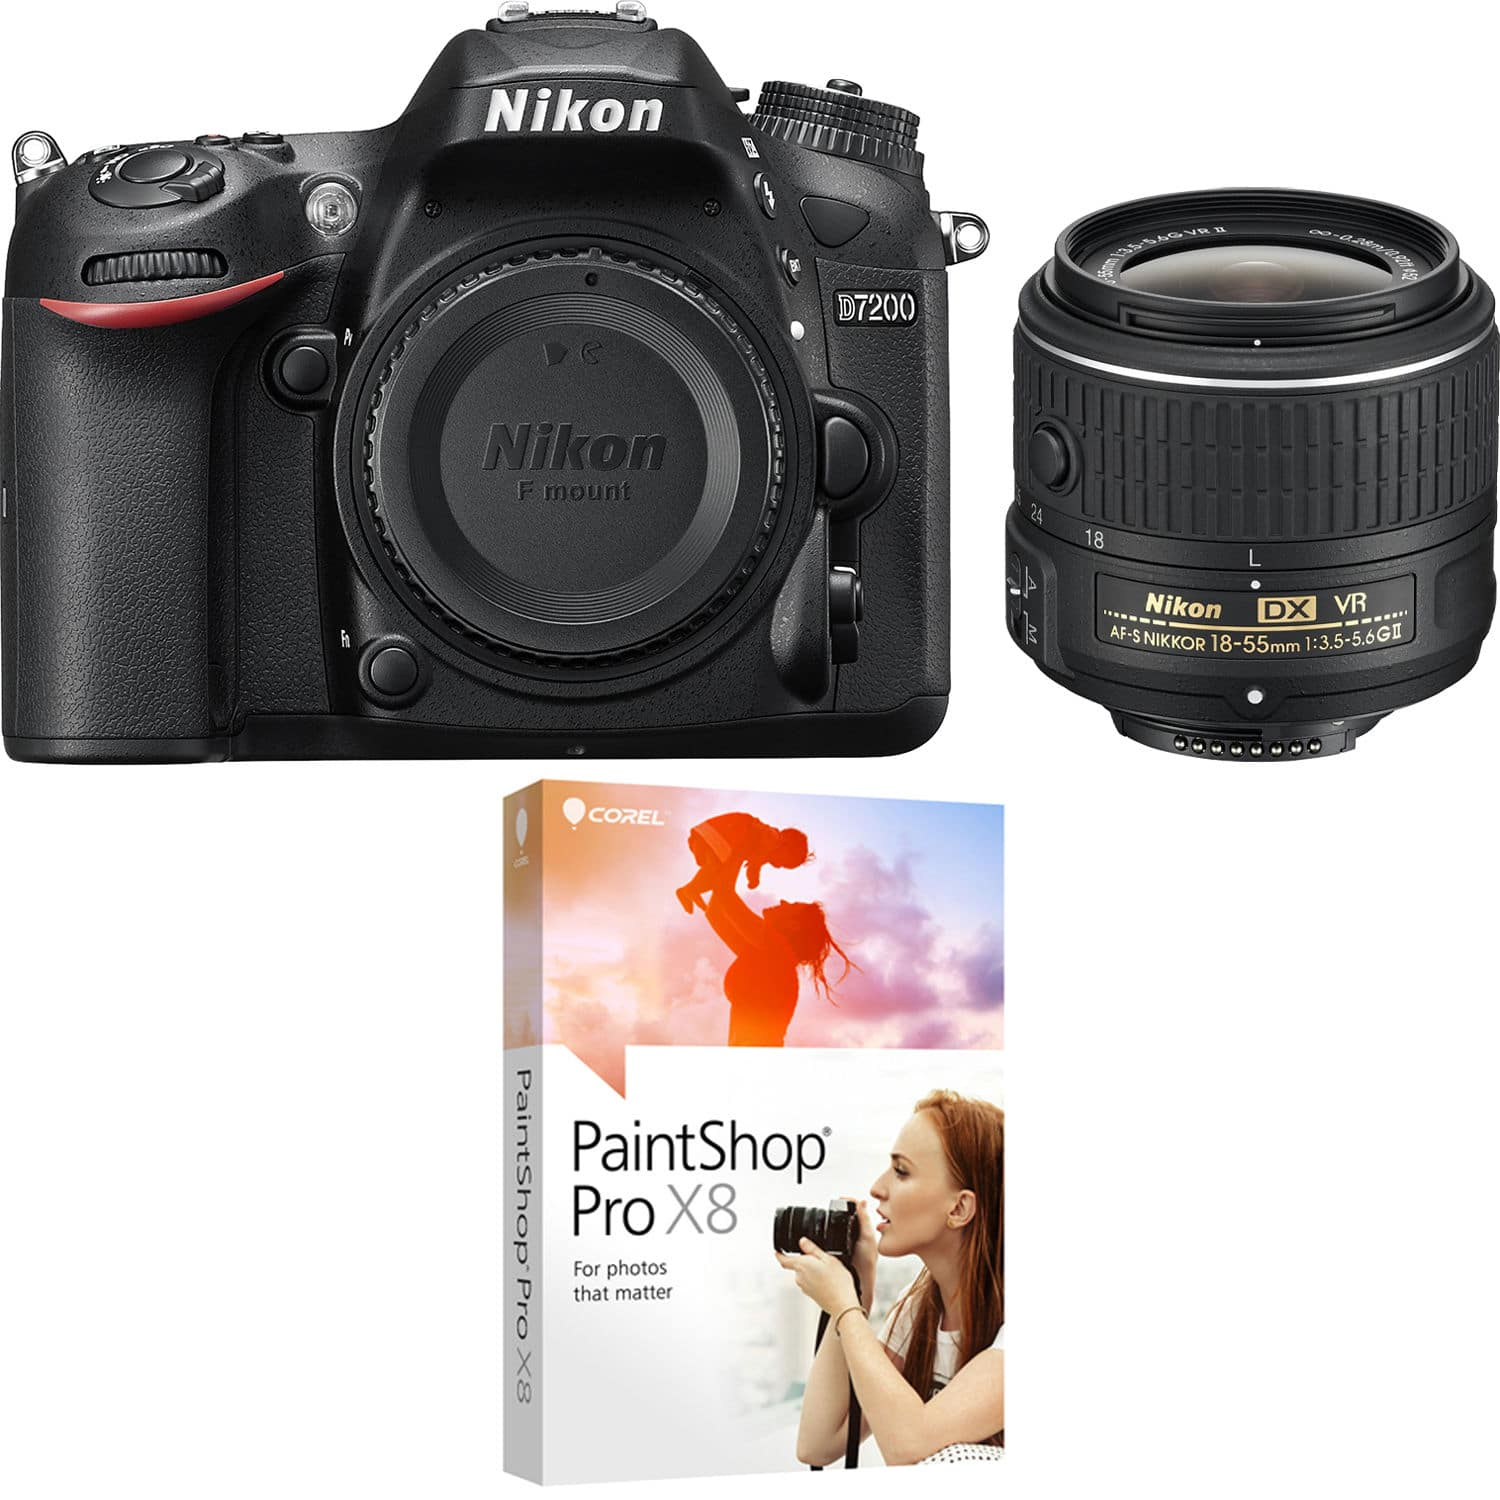 Nikon dslr refurbished - Madden girl website